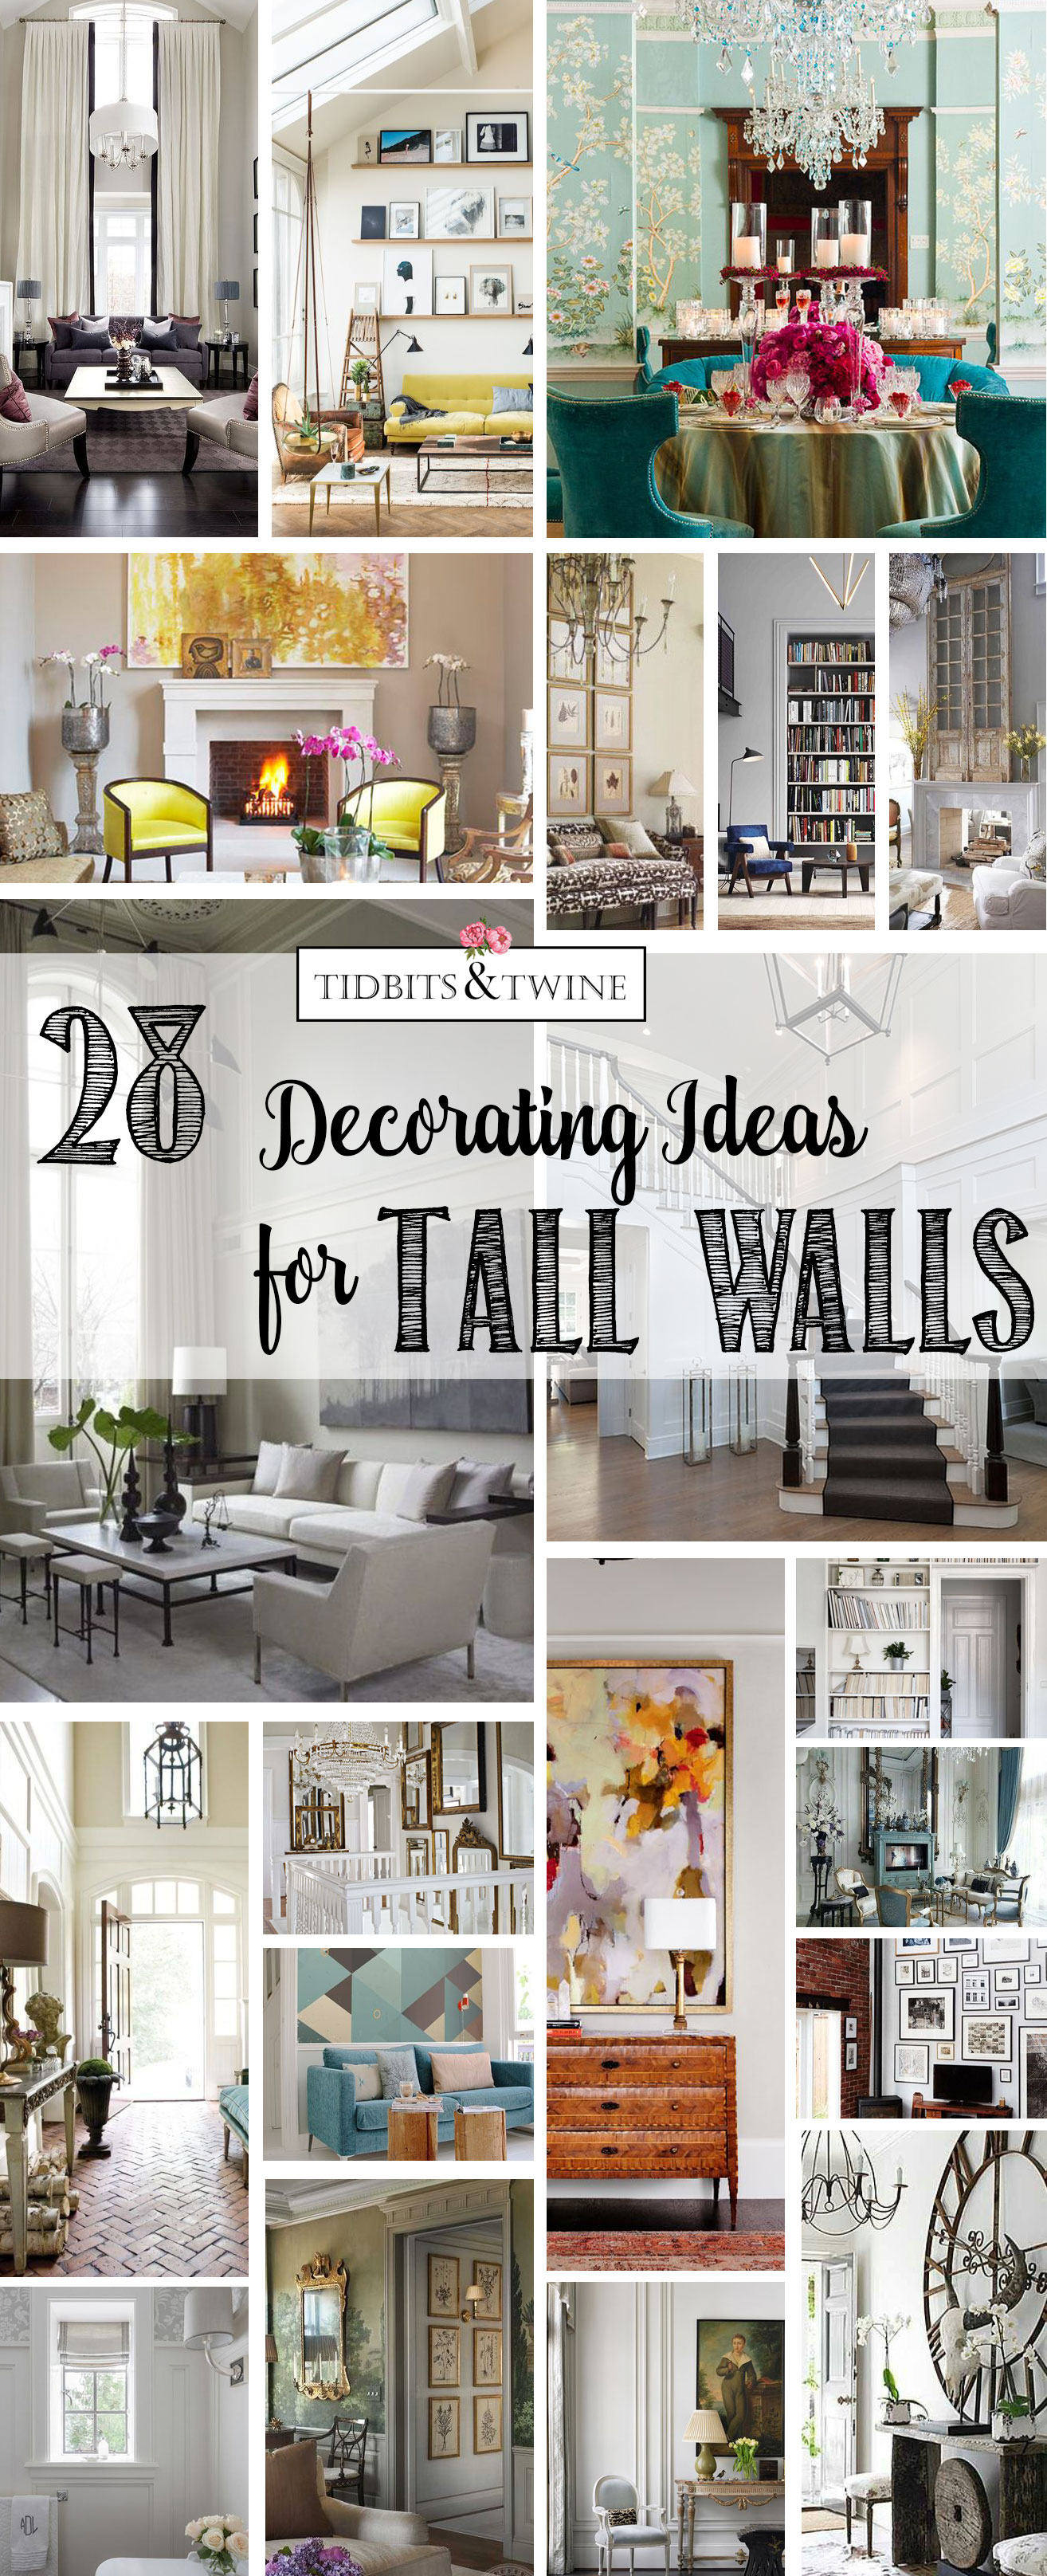 28 creative decorating ideas for tall walls tidbits twine - Family room wall decor ideas ...